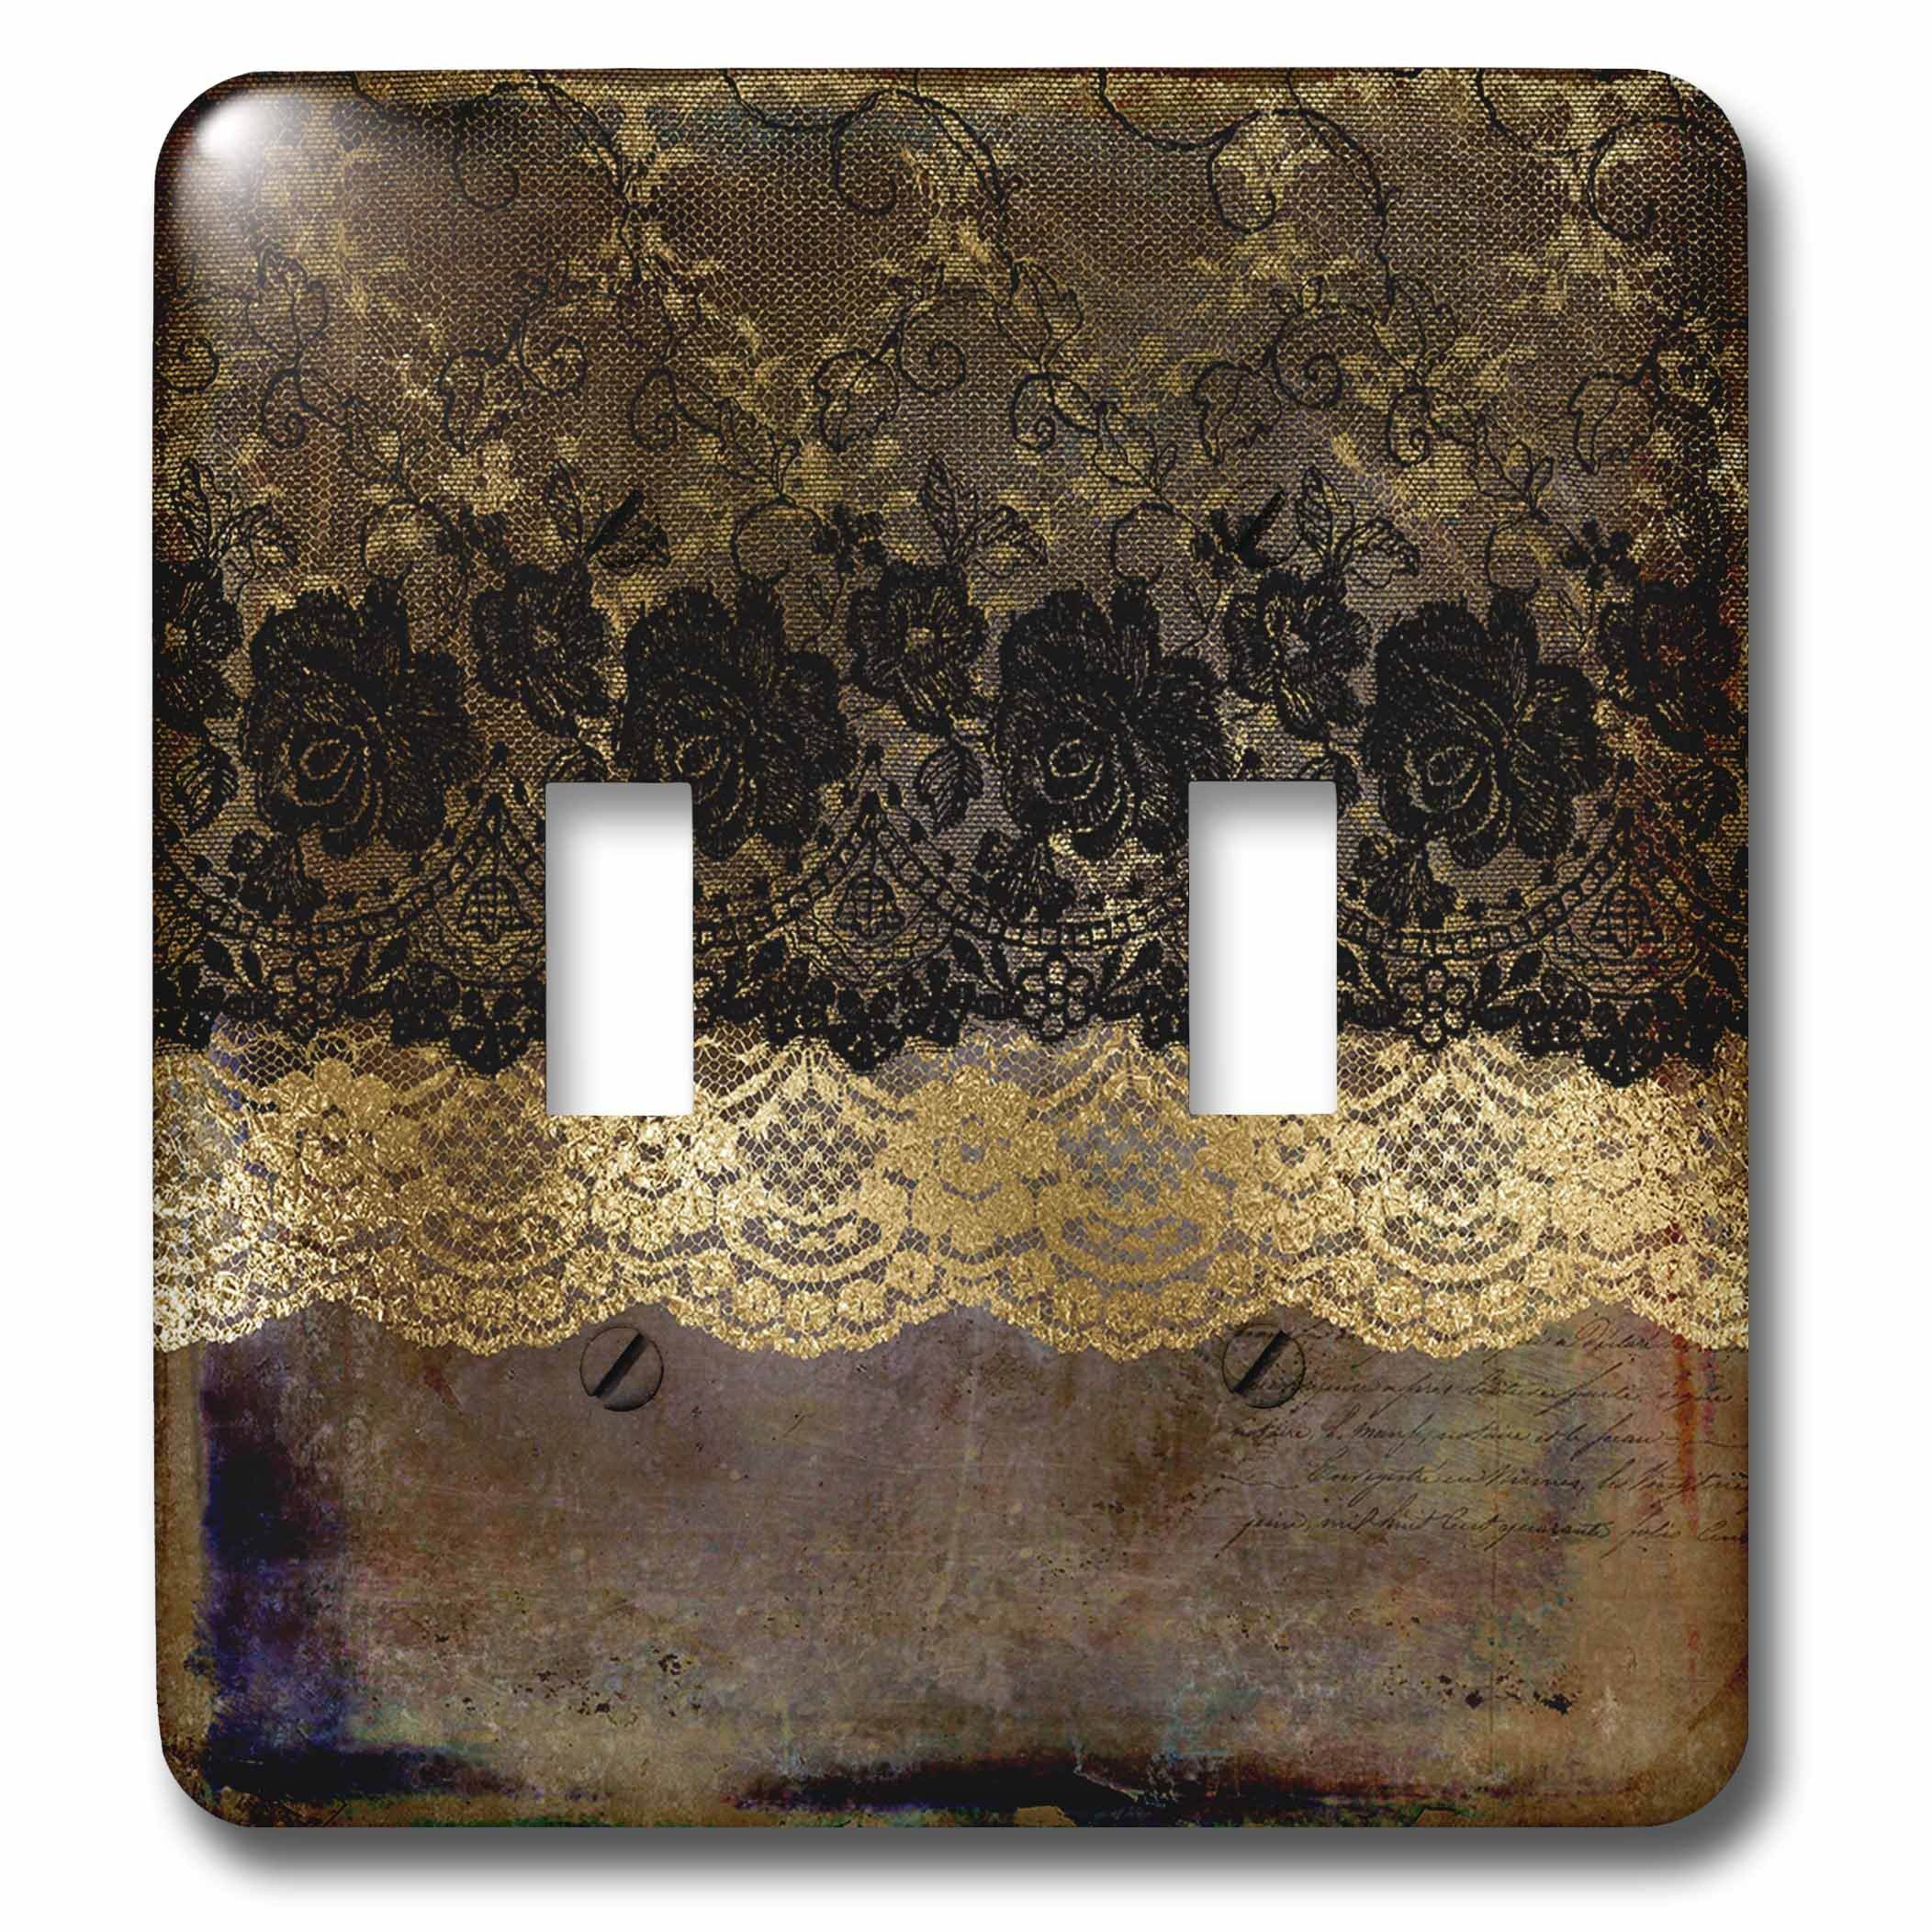 3dRose (lsp_263053_2) Double Toggle Switch (2) Black and Gold Floral Luxury Lace on Grunge Background by 3dRose (Image #1)